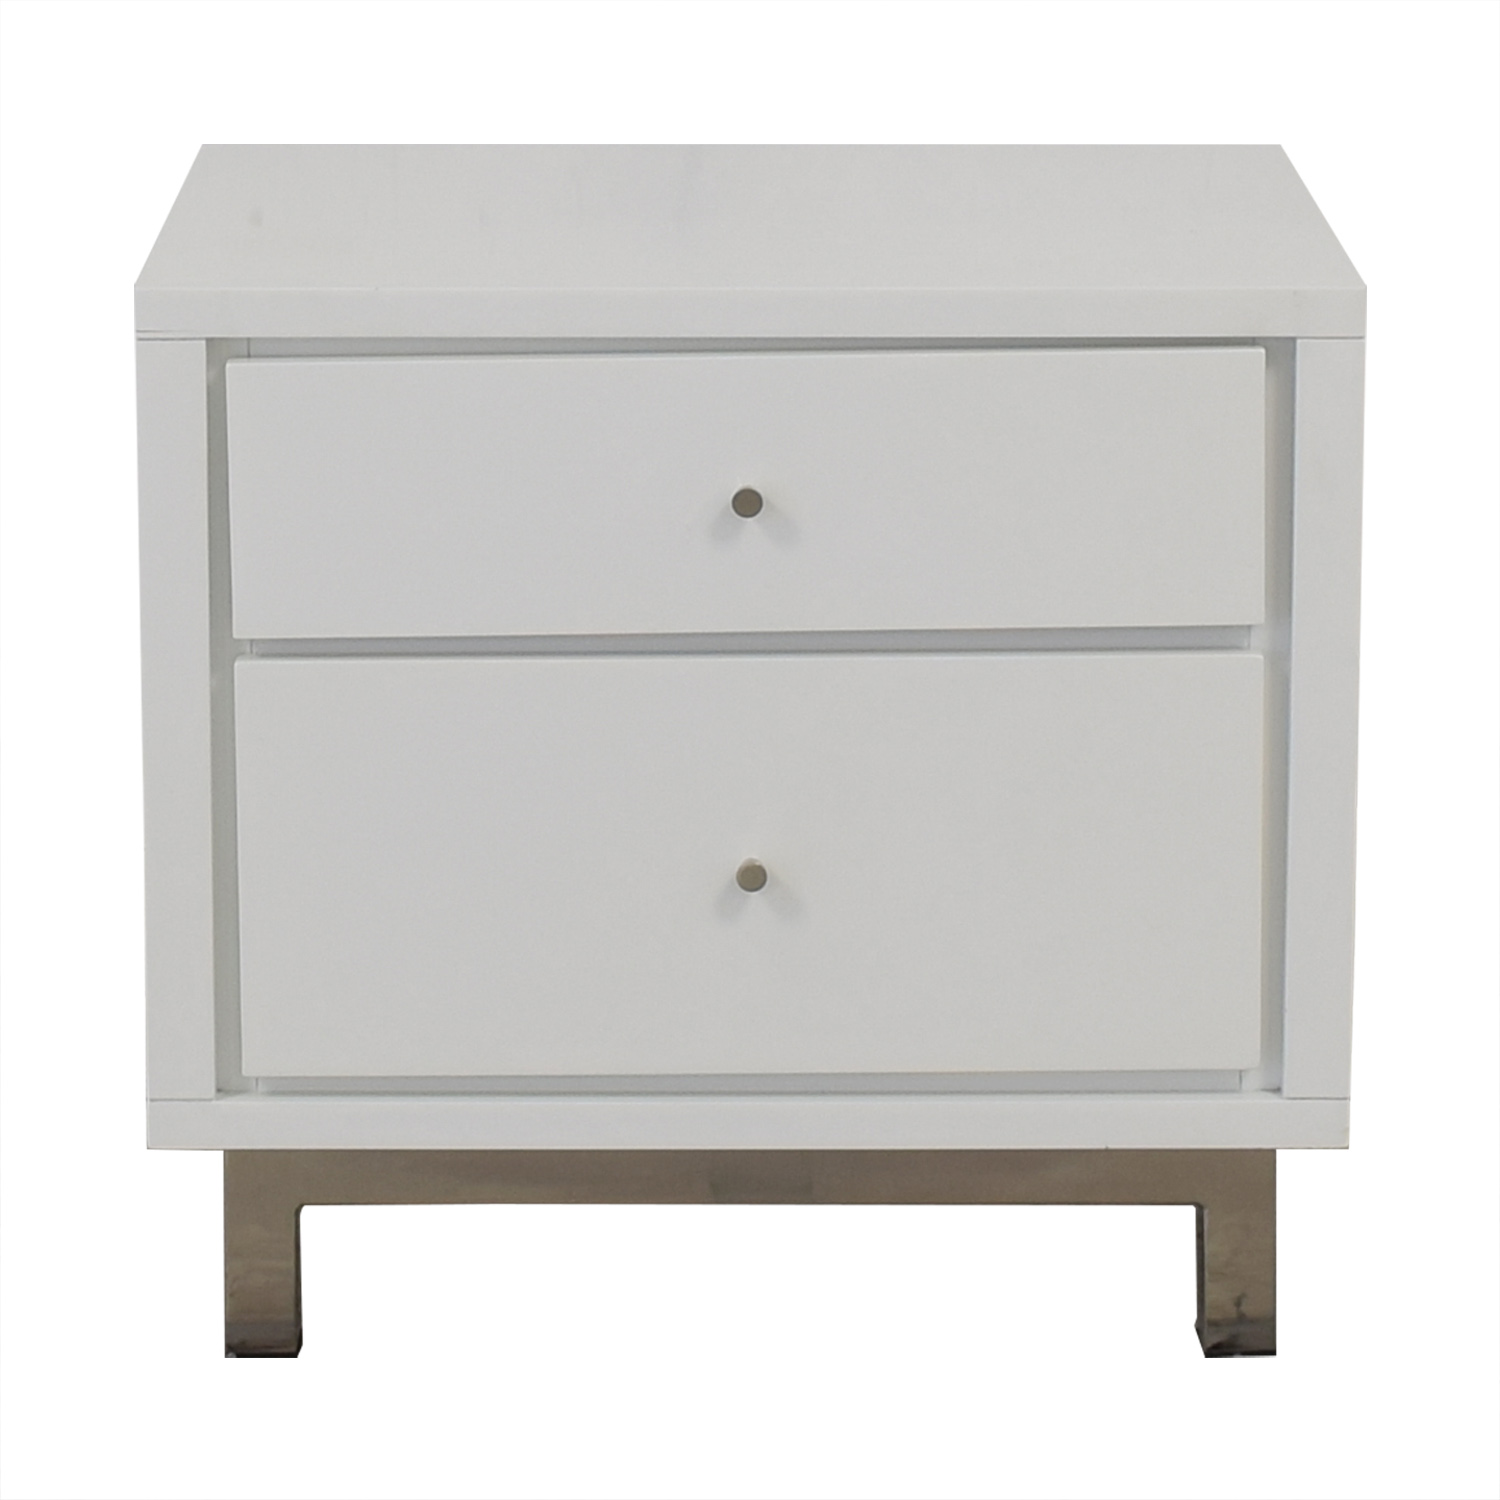 Crate & Barrel Two Drawer Nightstand sale